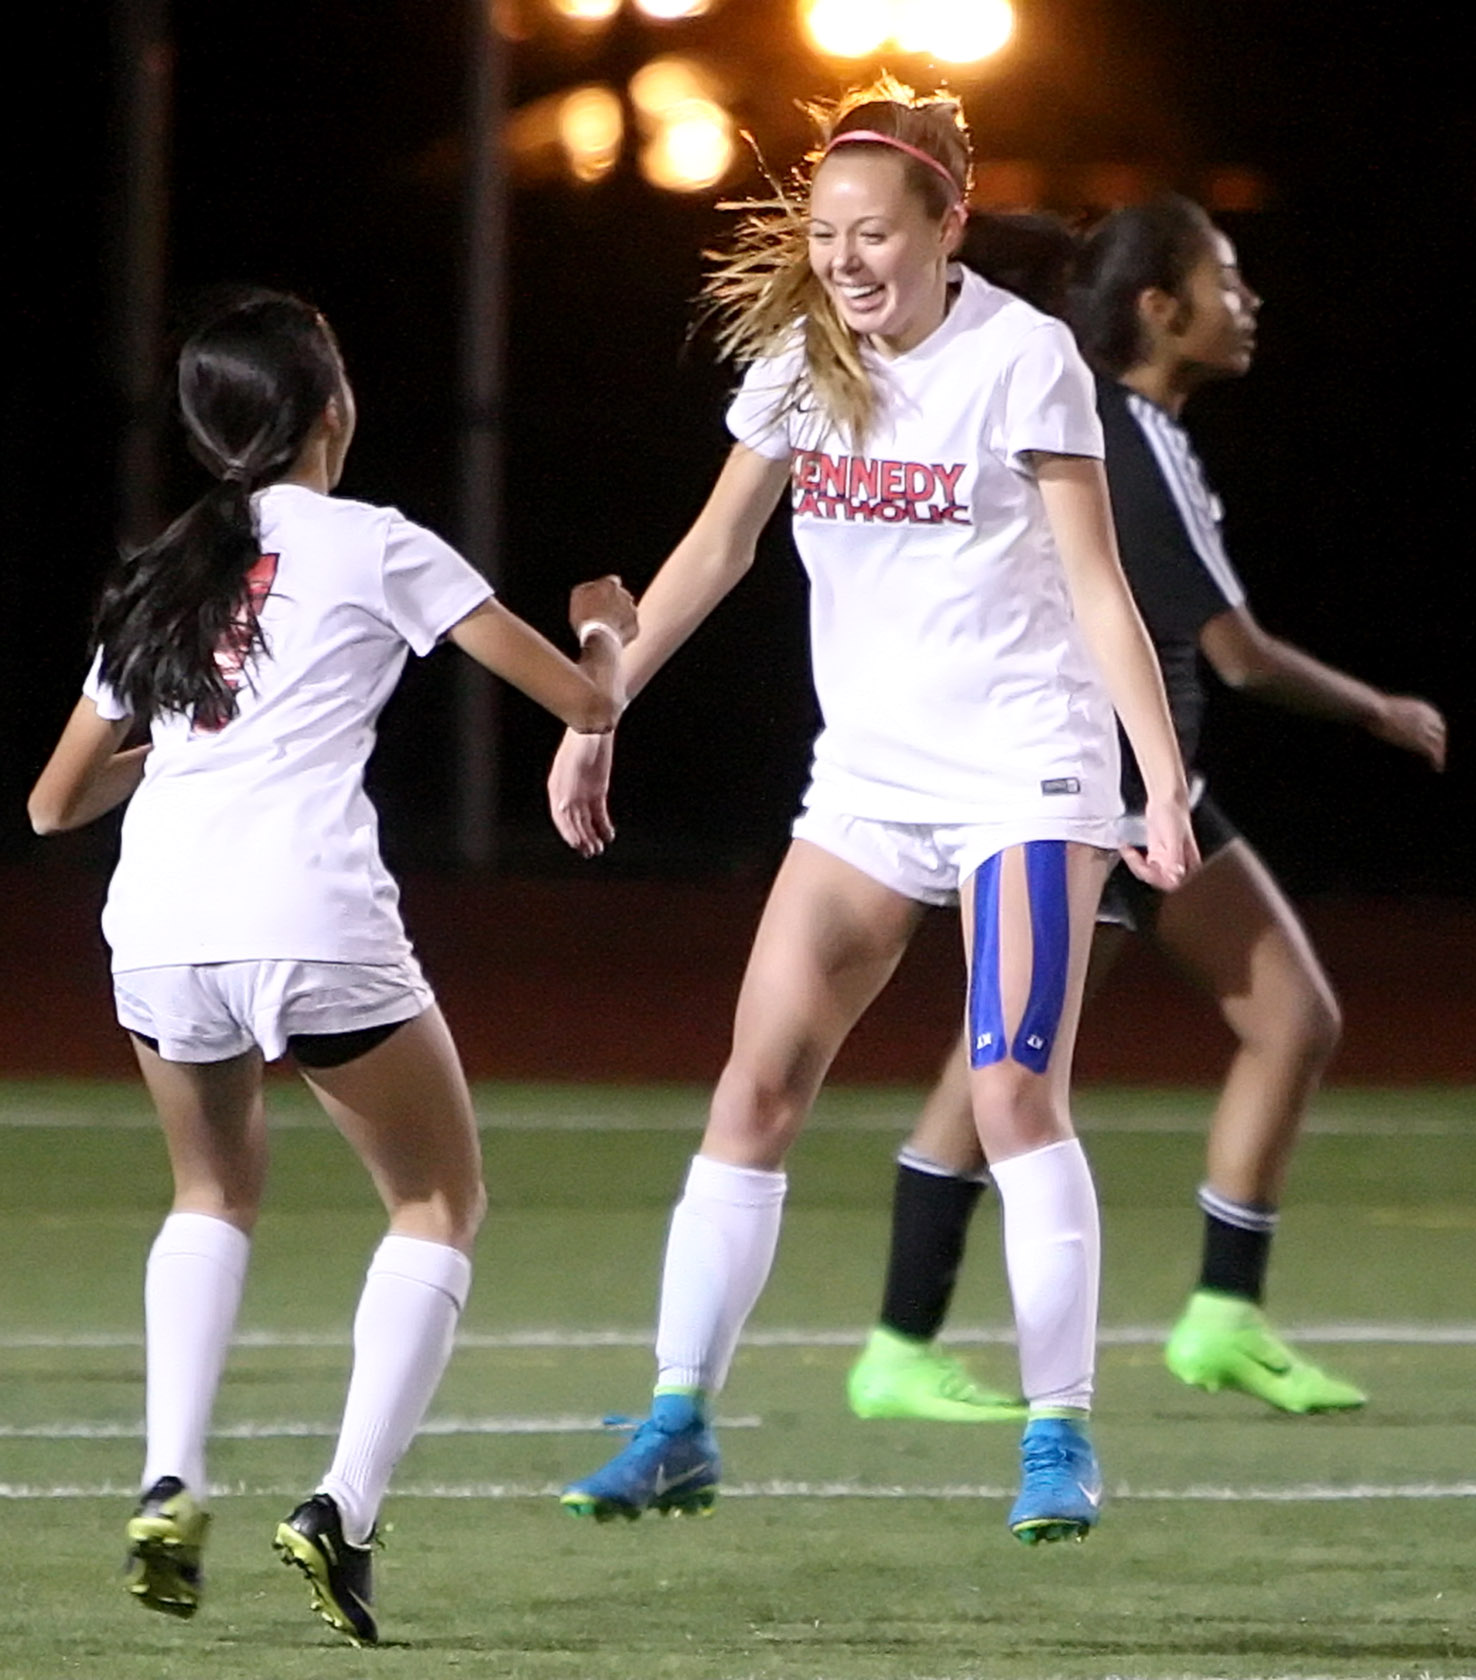 Bailey Hall (right) of Kennedy Catholic is all smiles after scoring the only goal in the game.